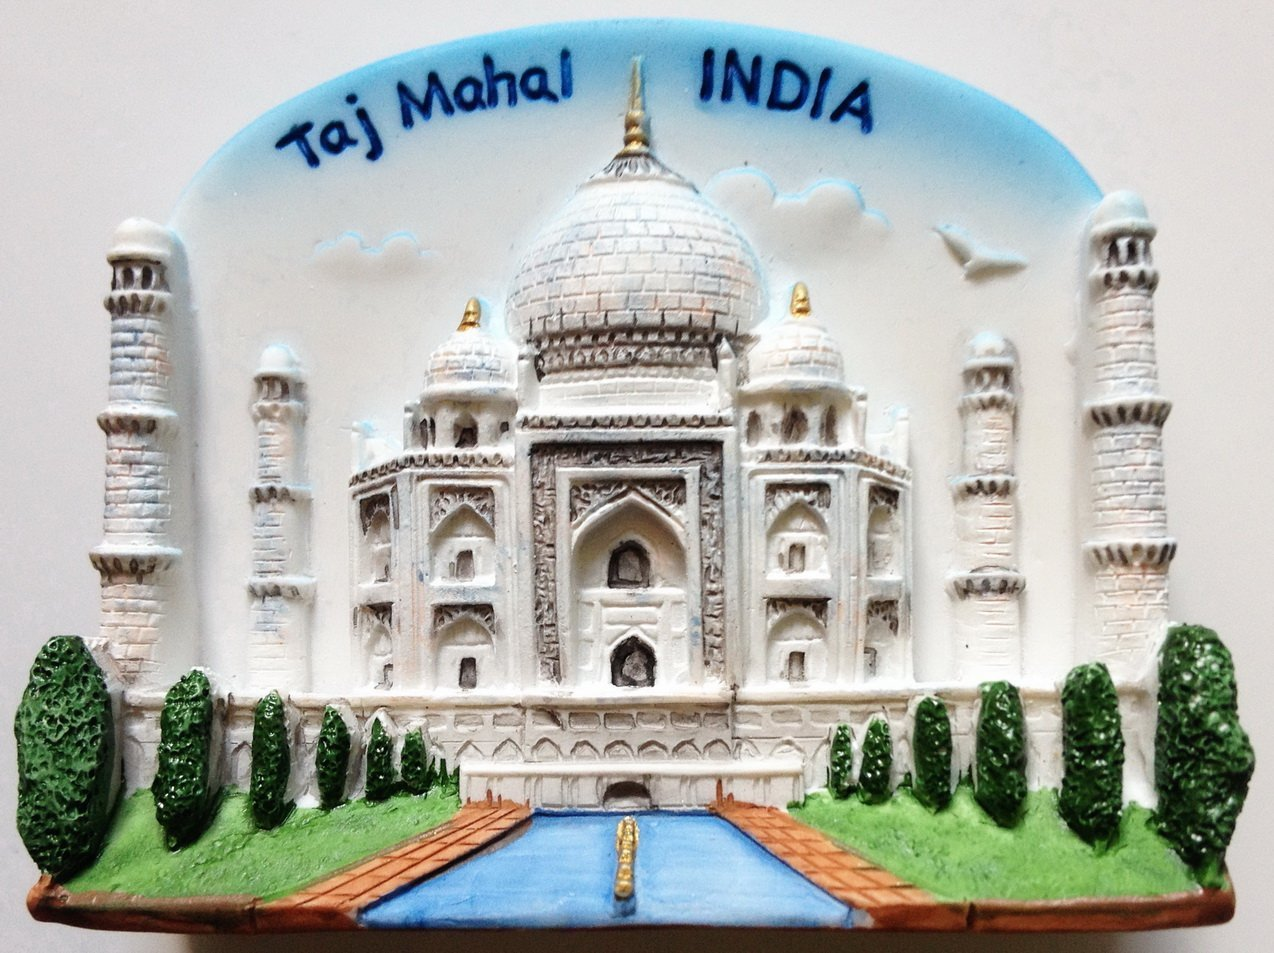 Taj Mahal INDIA Resin 3D fridge Refrigerator Thai Magnet Hand Made Craft. by Thai MCnets